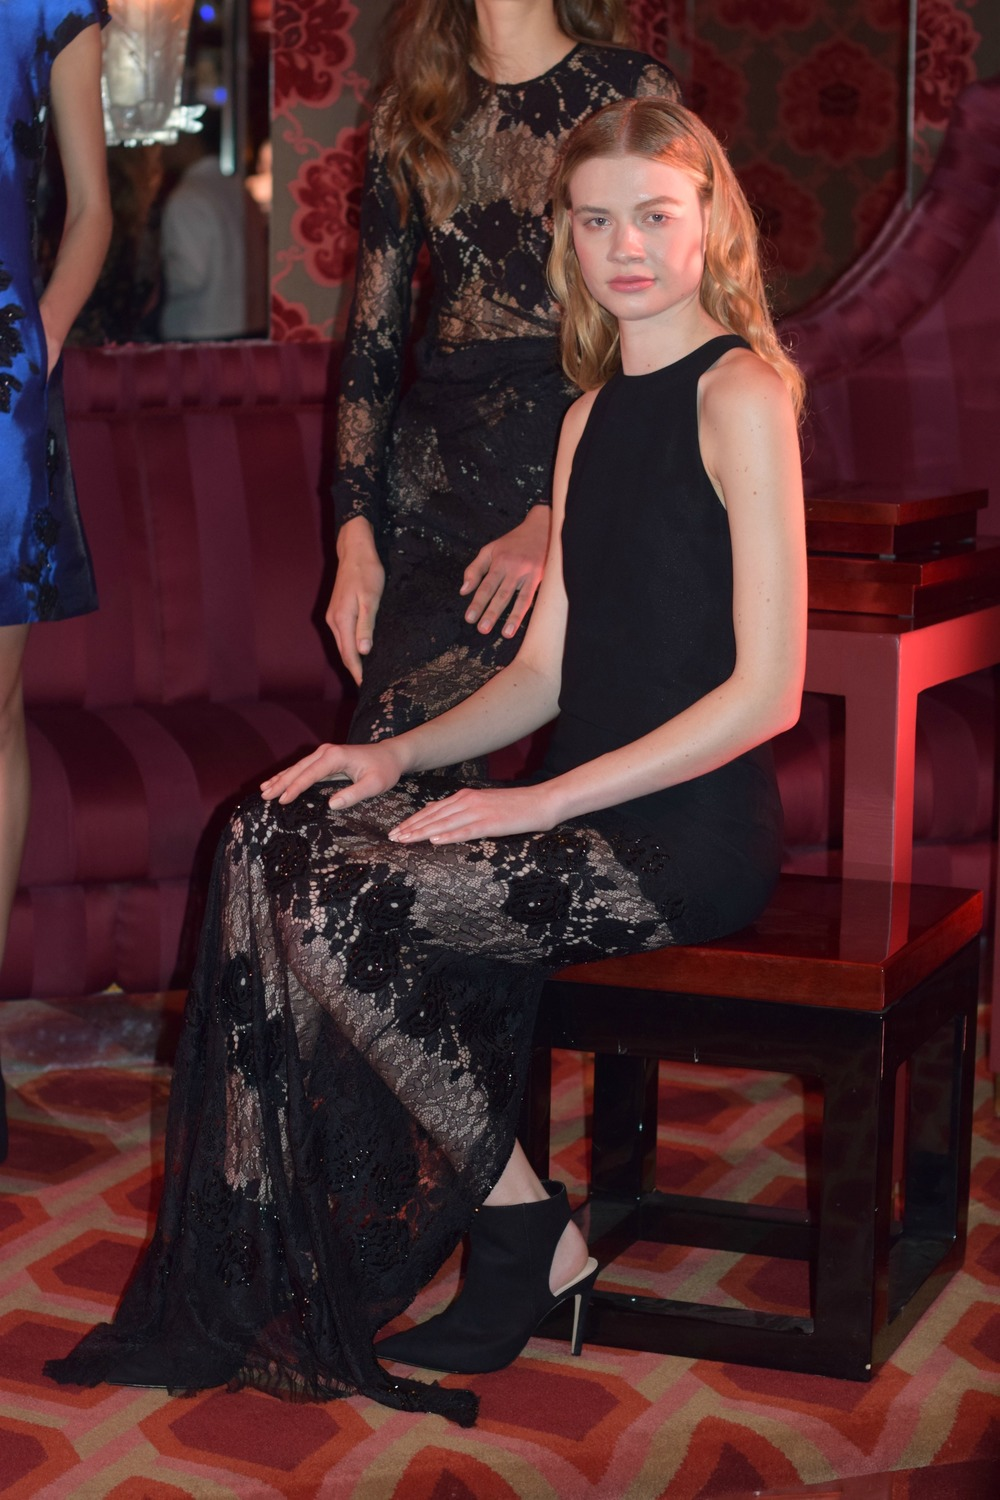 NYFW Josie Natori Fashion Presentation Fall:Winter 2016 Louboutins & Love Fashion Blog Esther Santer NYC Street Style Runway Models Collection Hair Beauty Inspo Press Event Coverage Photos Details Dress Gown Beautiful Pretty Lace Trends Gorgeous Blue.jpg